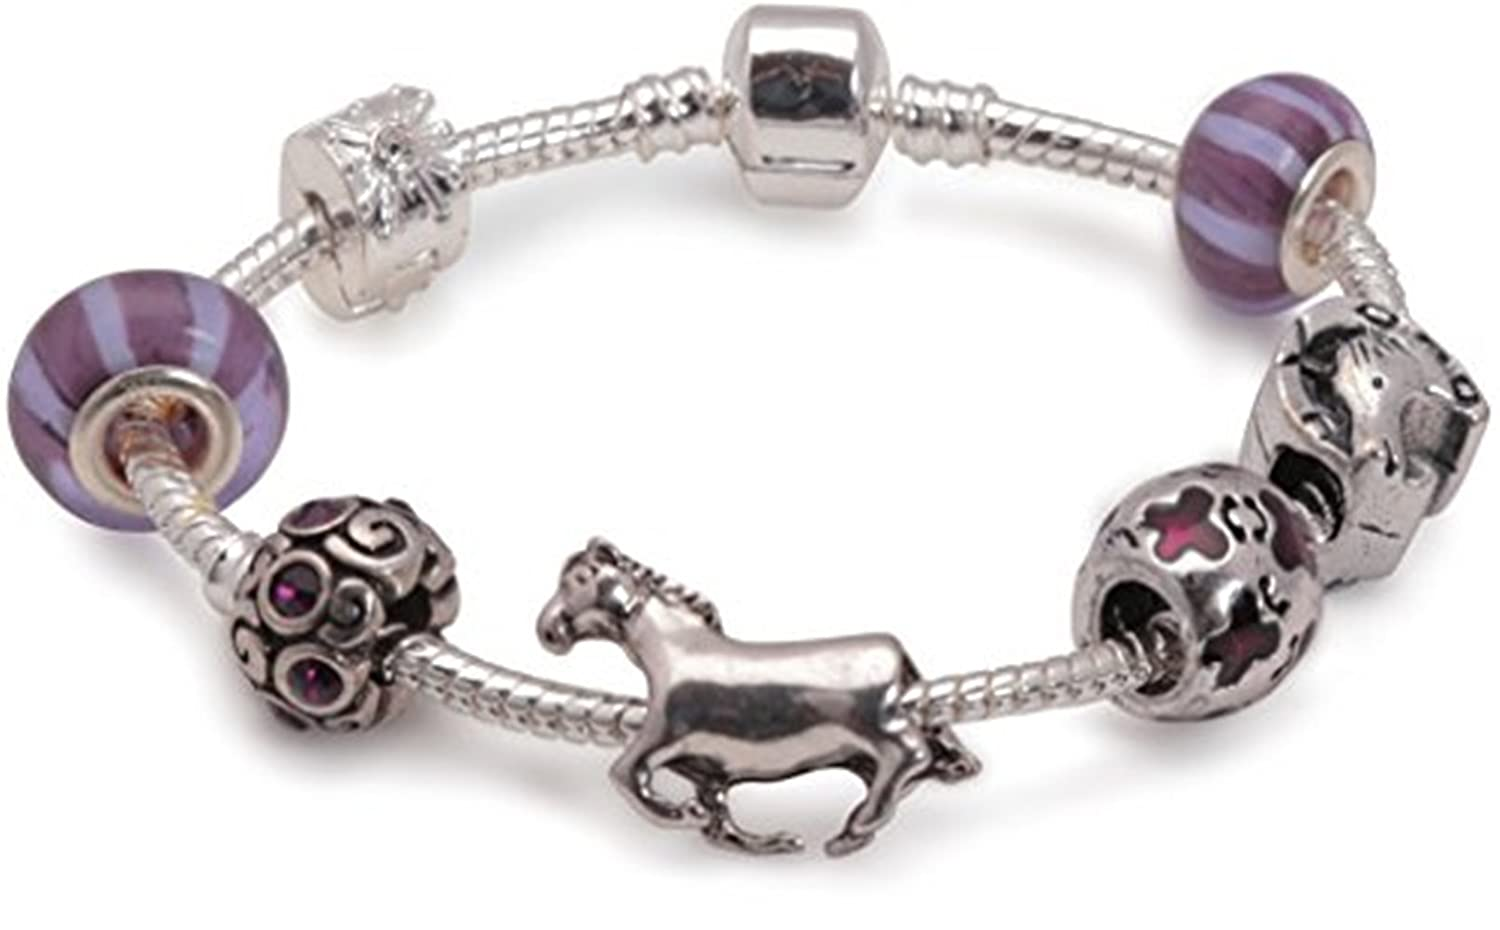 Liberty Charms Childrens Horse Lovers Dream Silver Plated Charm Bracelet. Girls Gift Stocking Filler Liberty Trading GB Ltd BC35-15cm